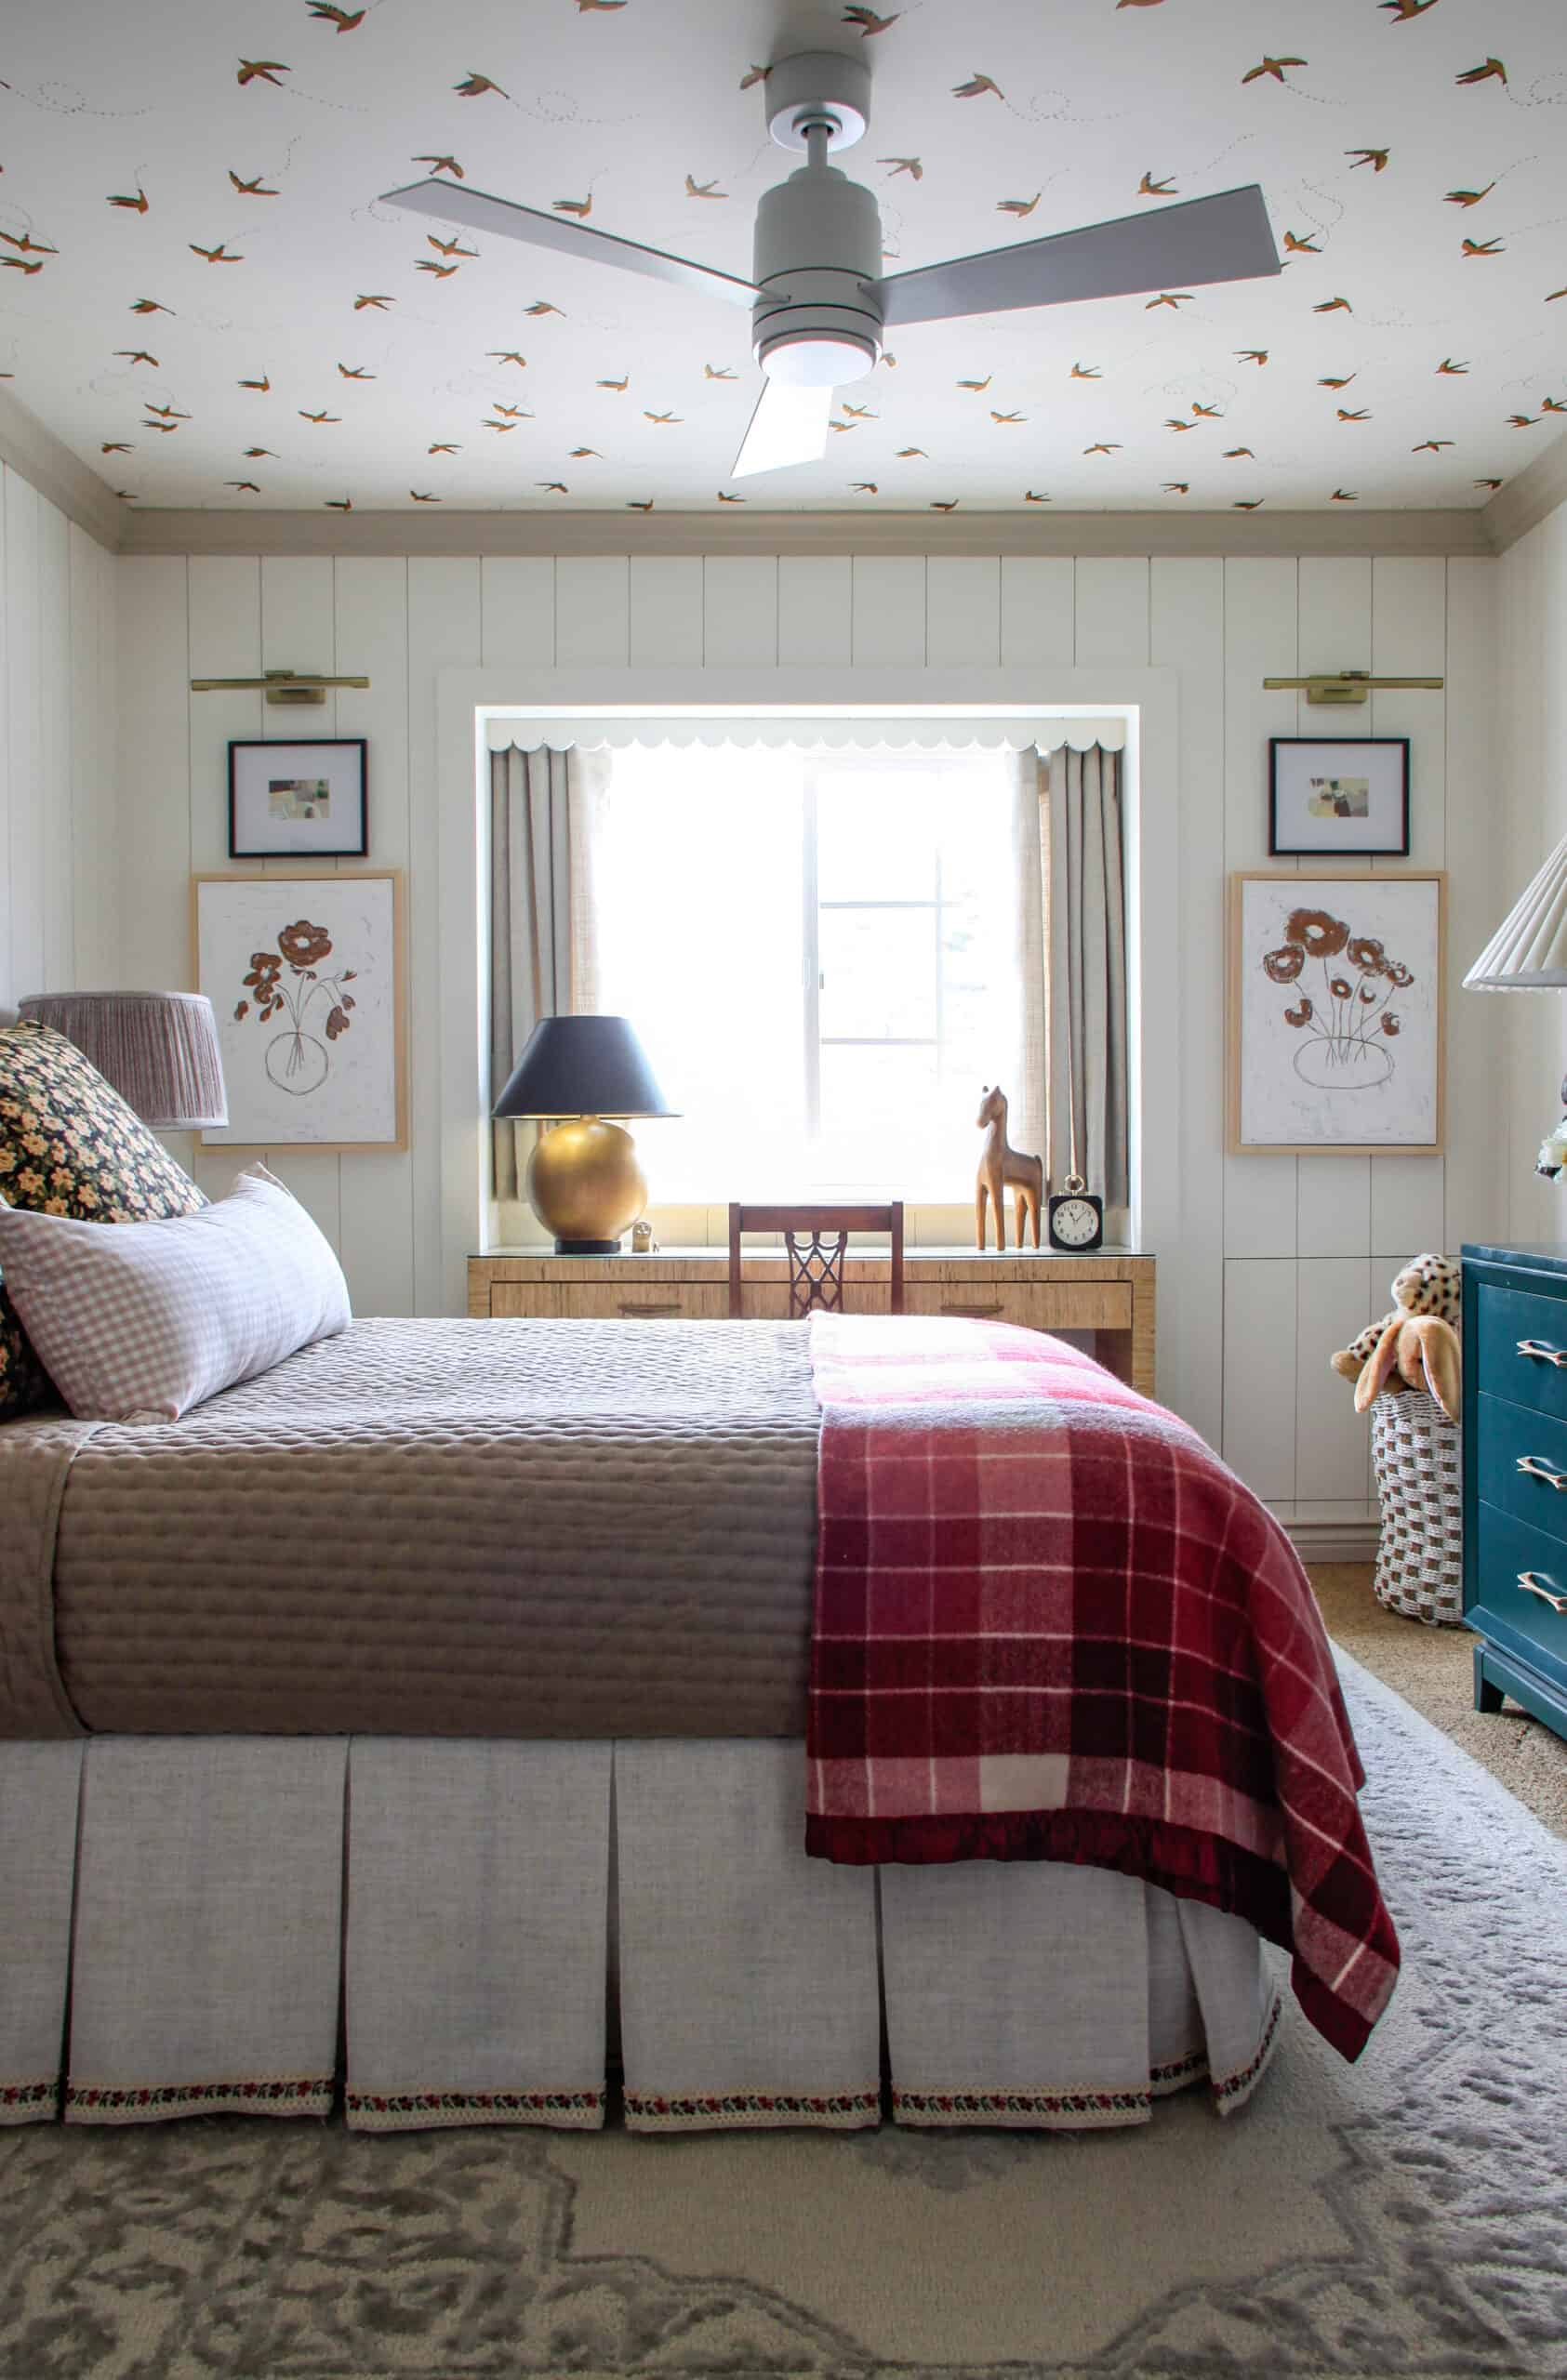 side view of bedroom with pink plaid blanket and bird wallpaper on the ceiling